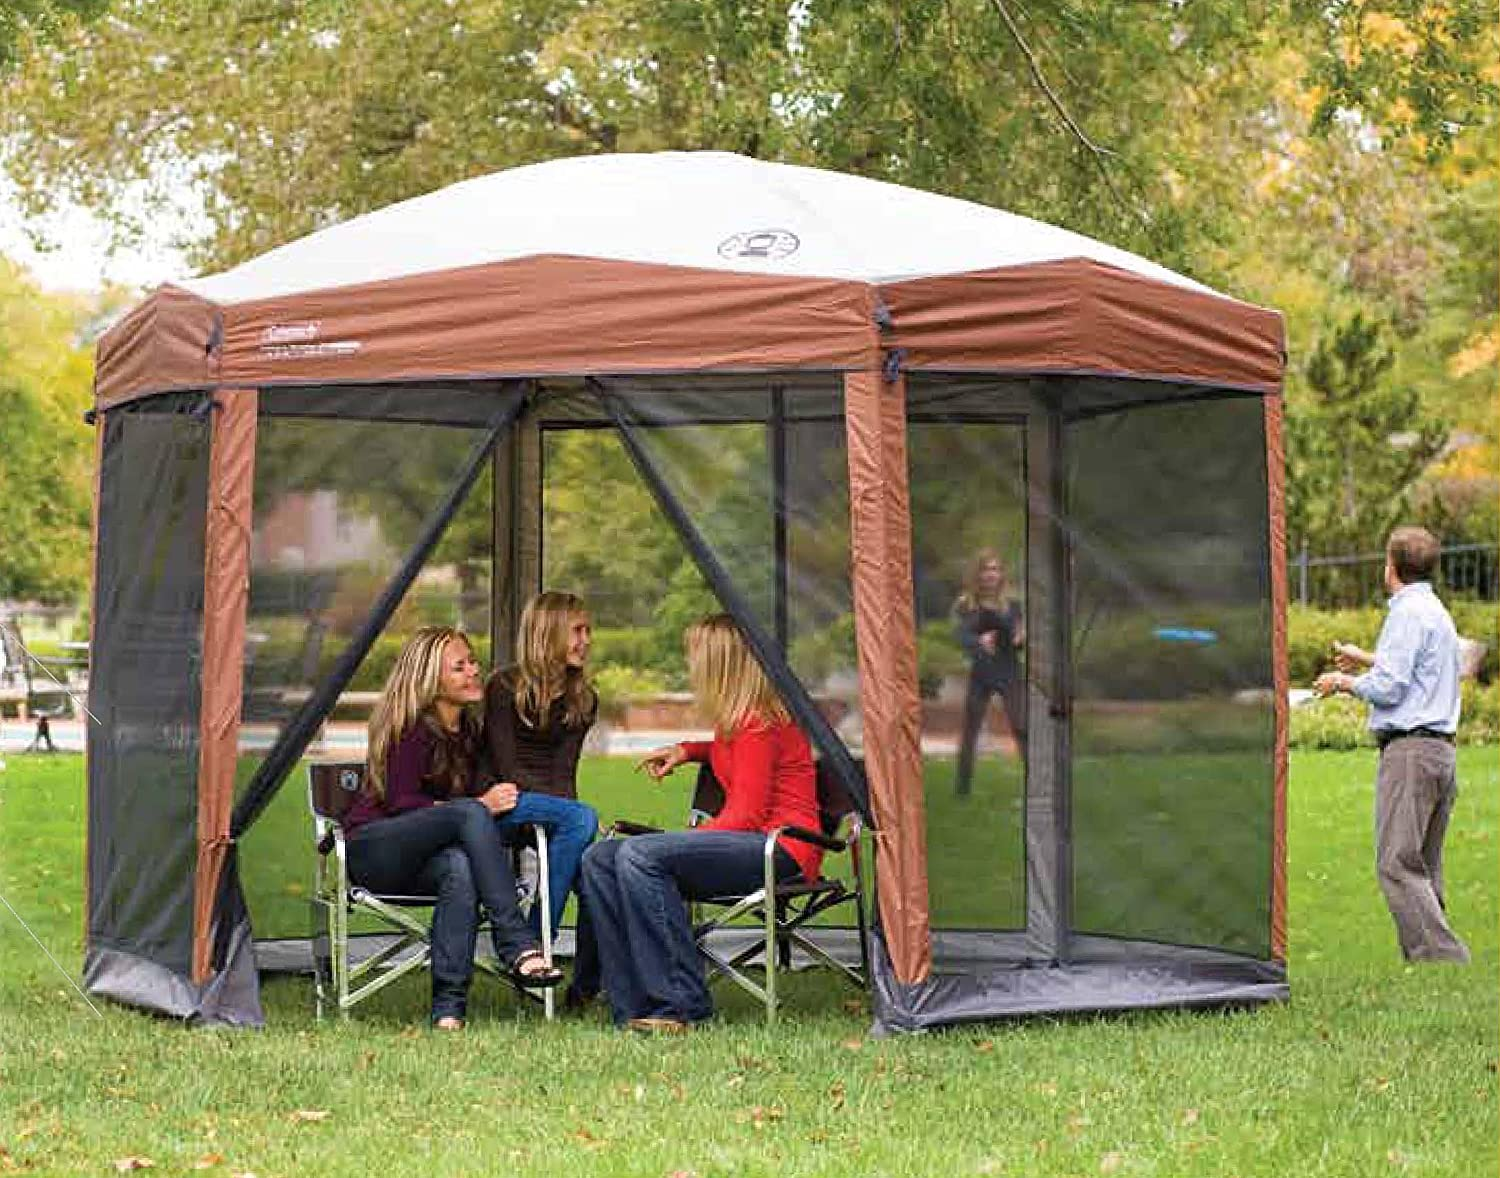 Camping Shelters Screened Canopy Tents Home House Hiking